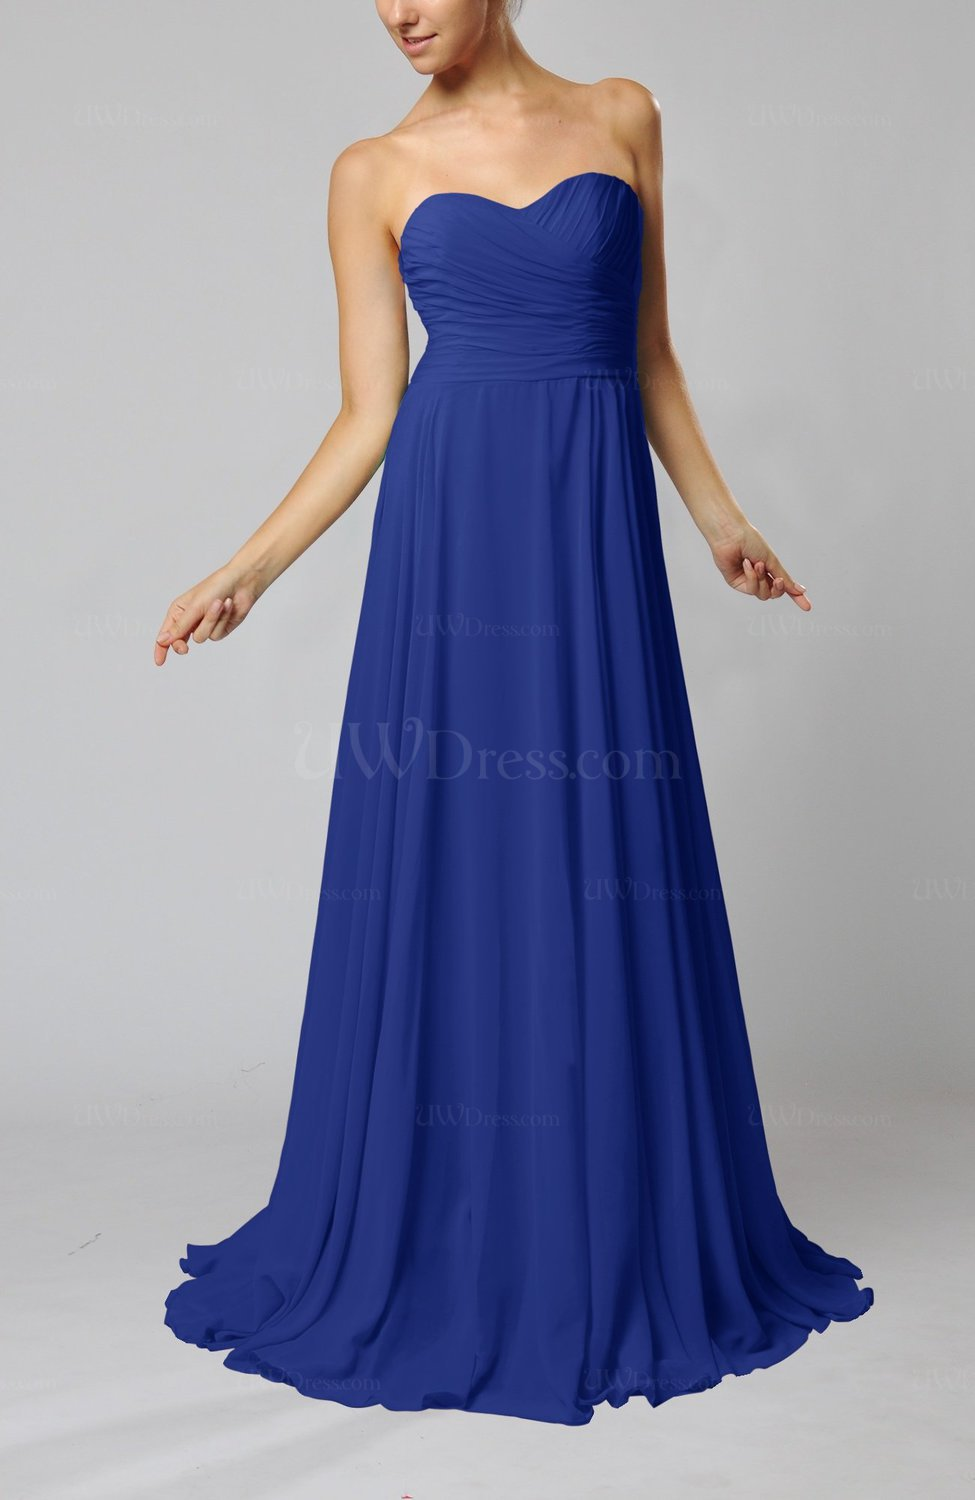 Electric Blue Wedding Guest Dresses : Blue simple sheath sweetheart zip up sweep train ruching wedding guest